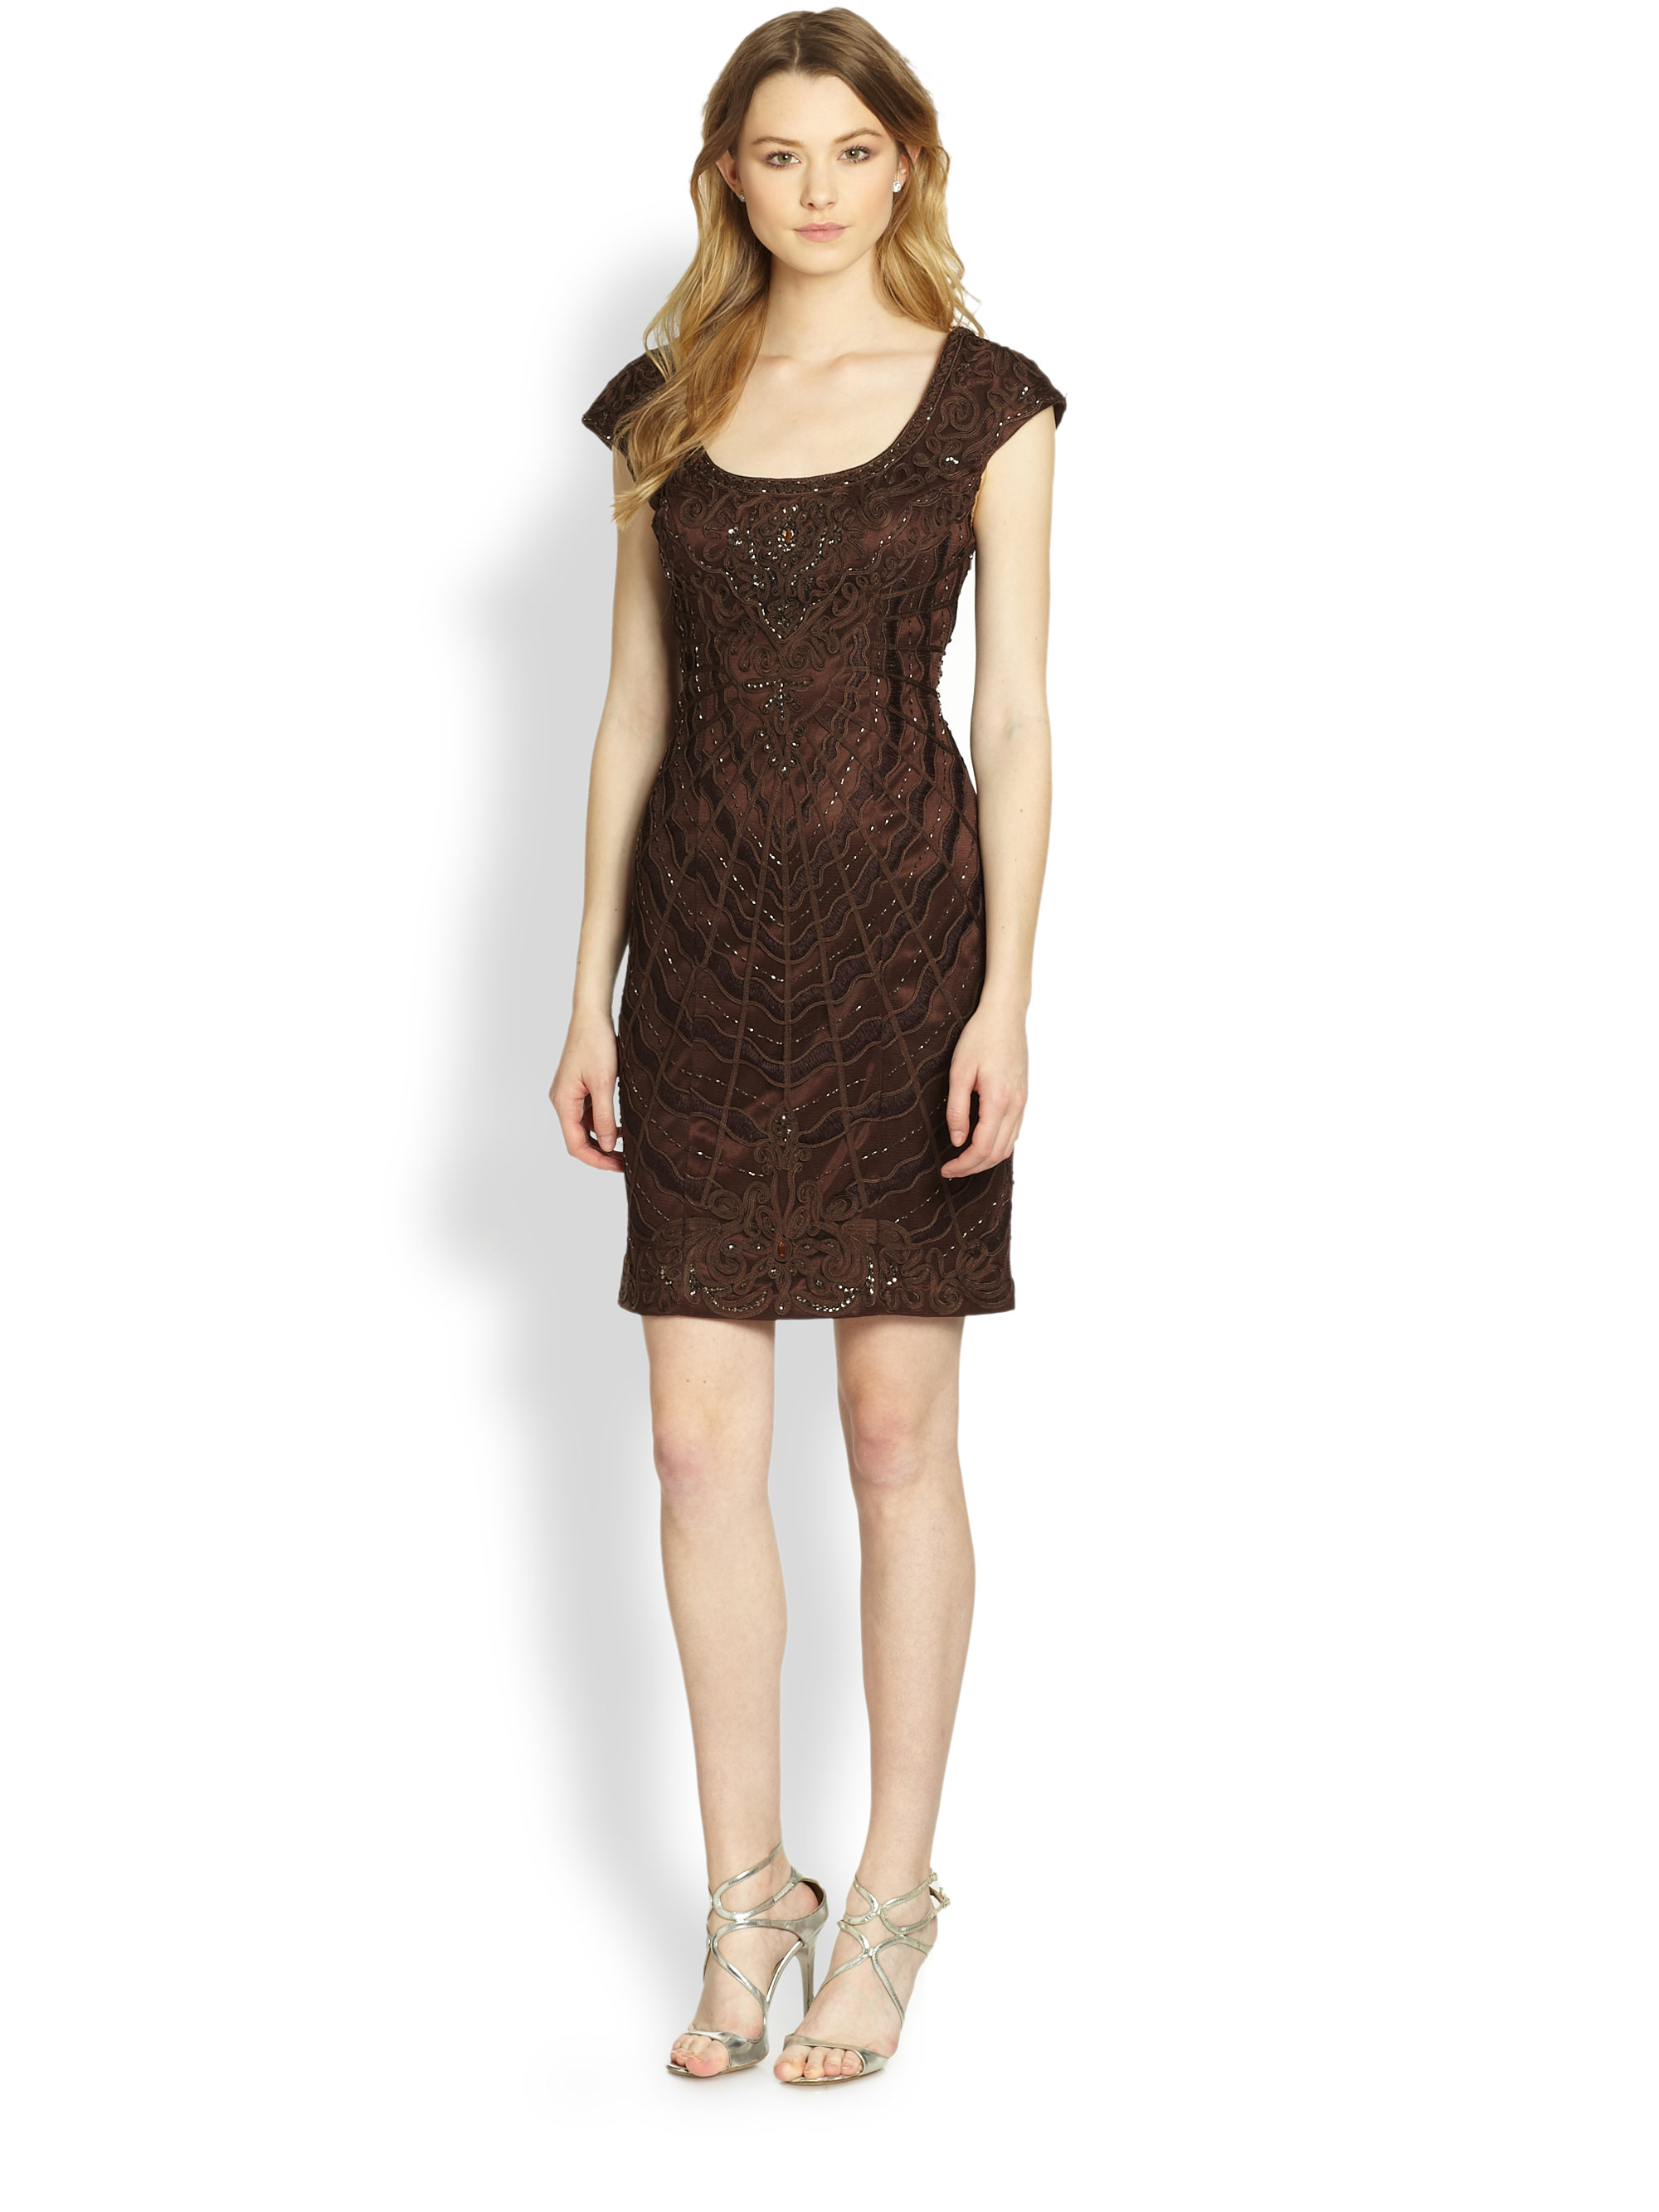 Sue wong Soutache-Embroidered Cocktail Dress in Brown | Lyst